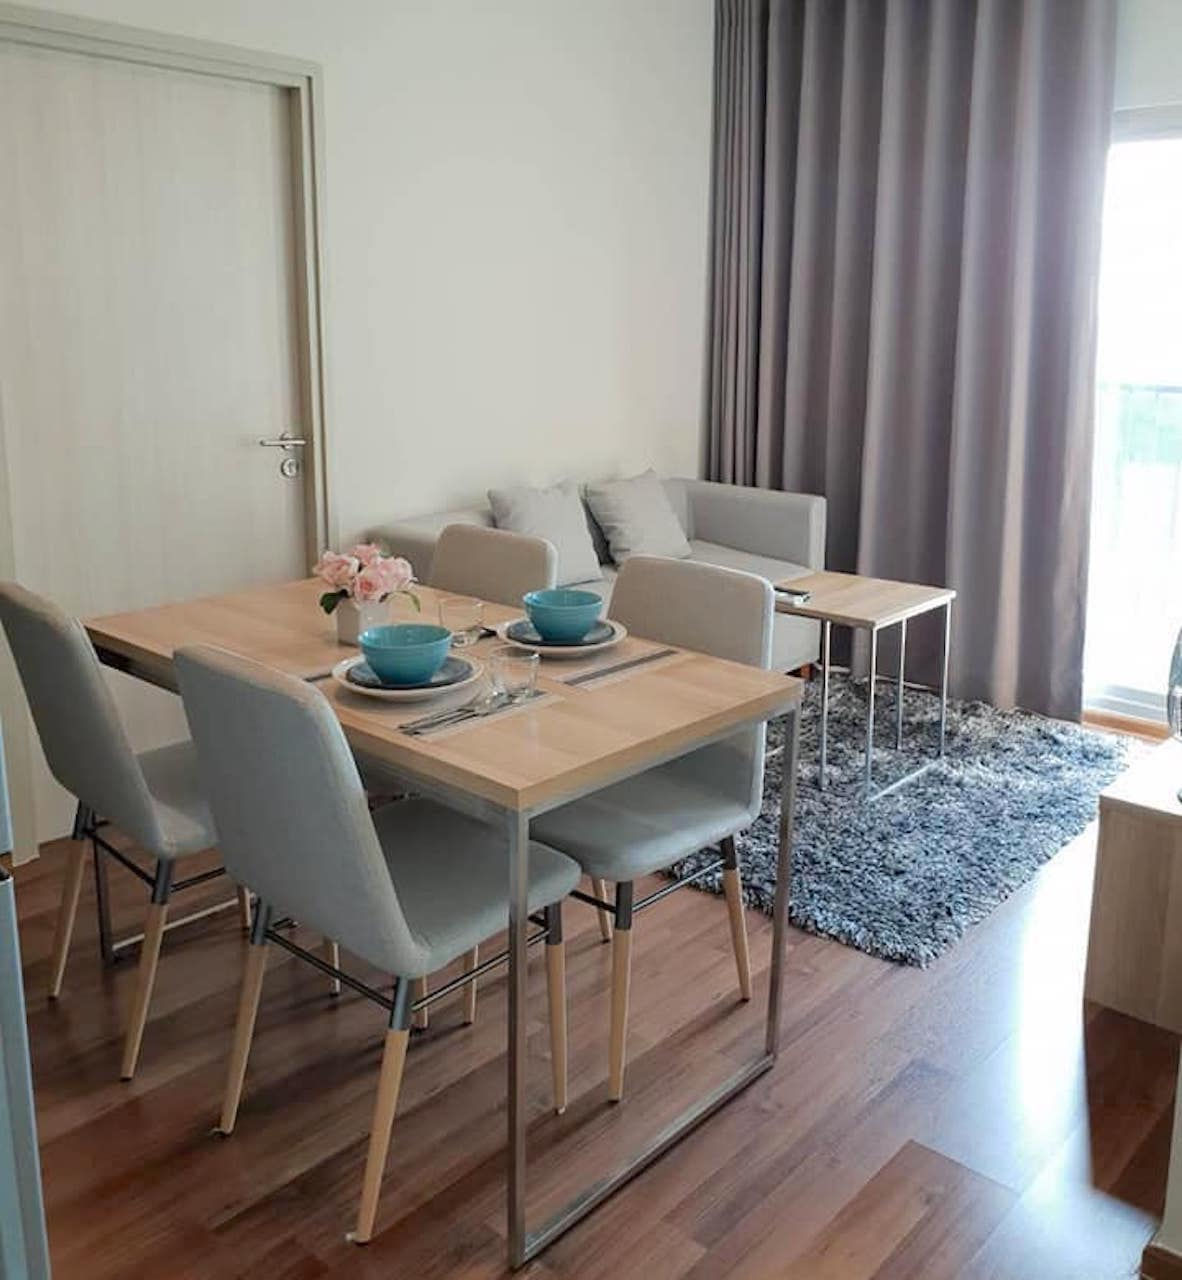 2 Bedroom Condo For Rent Bangkok: 160m To MRT Condo For Rent